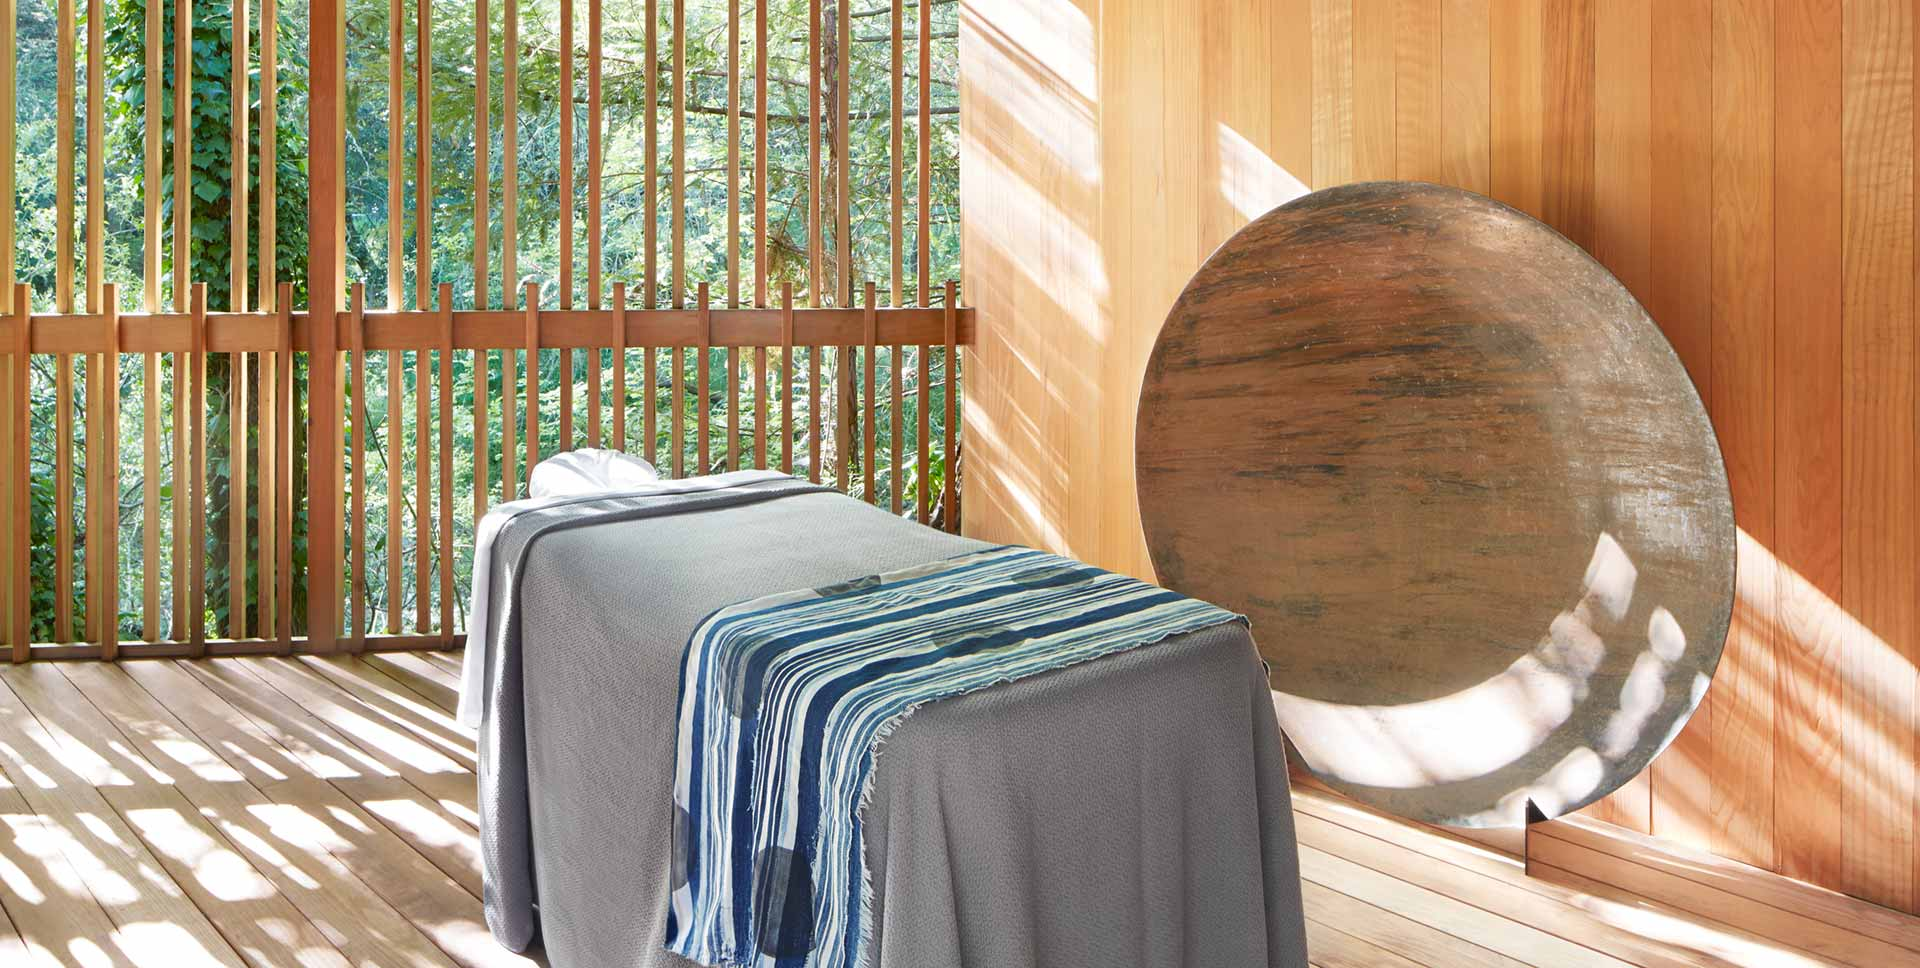 9 Fun Spa And Wellness Ideas For You And Your Friends Sonomacounty Com